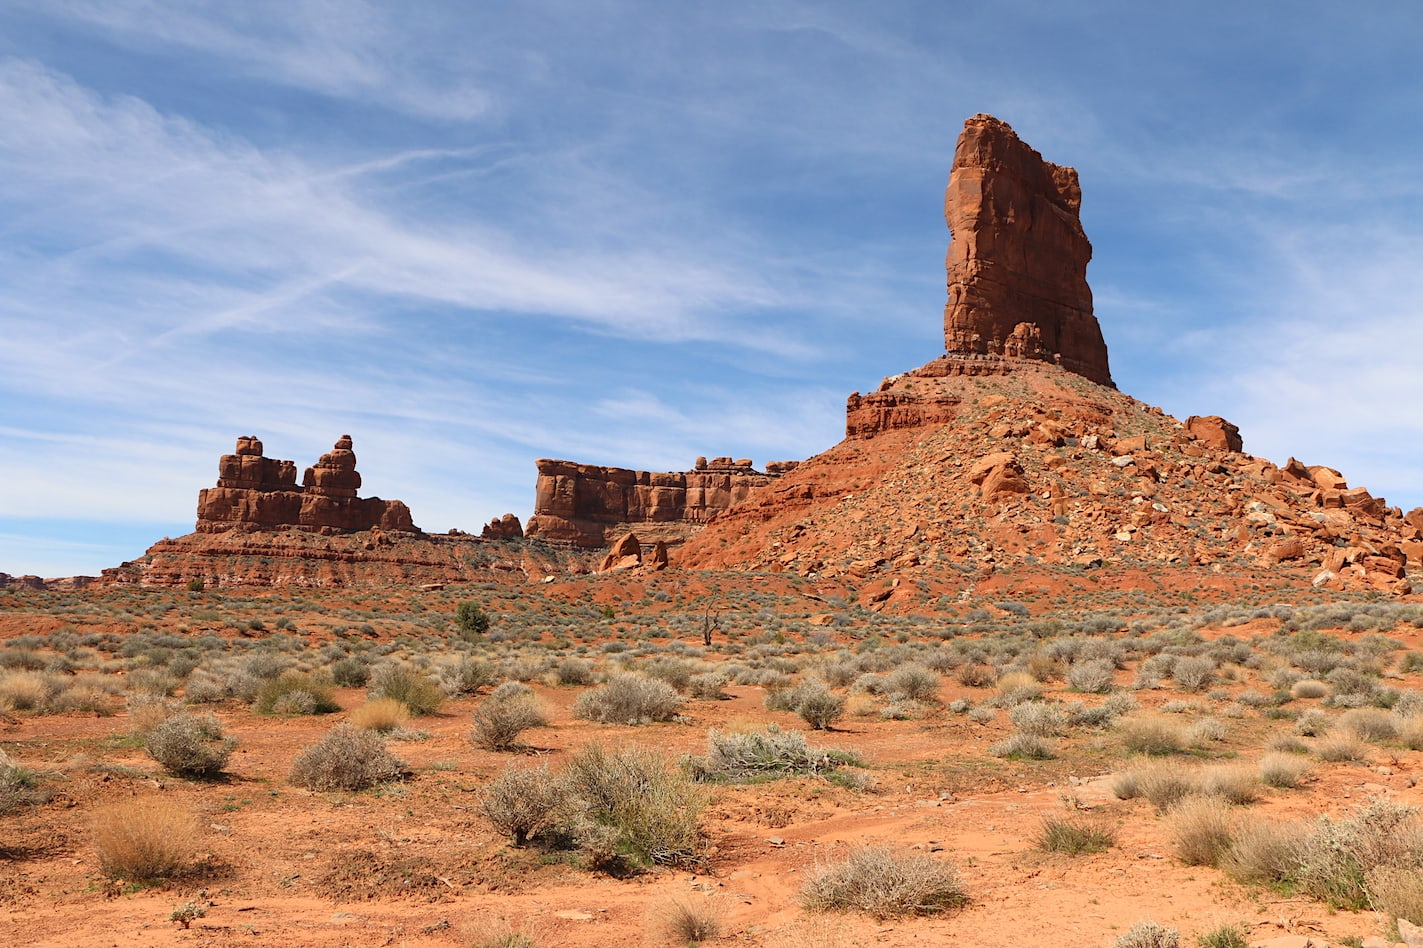 Valley of the Gods scenery